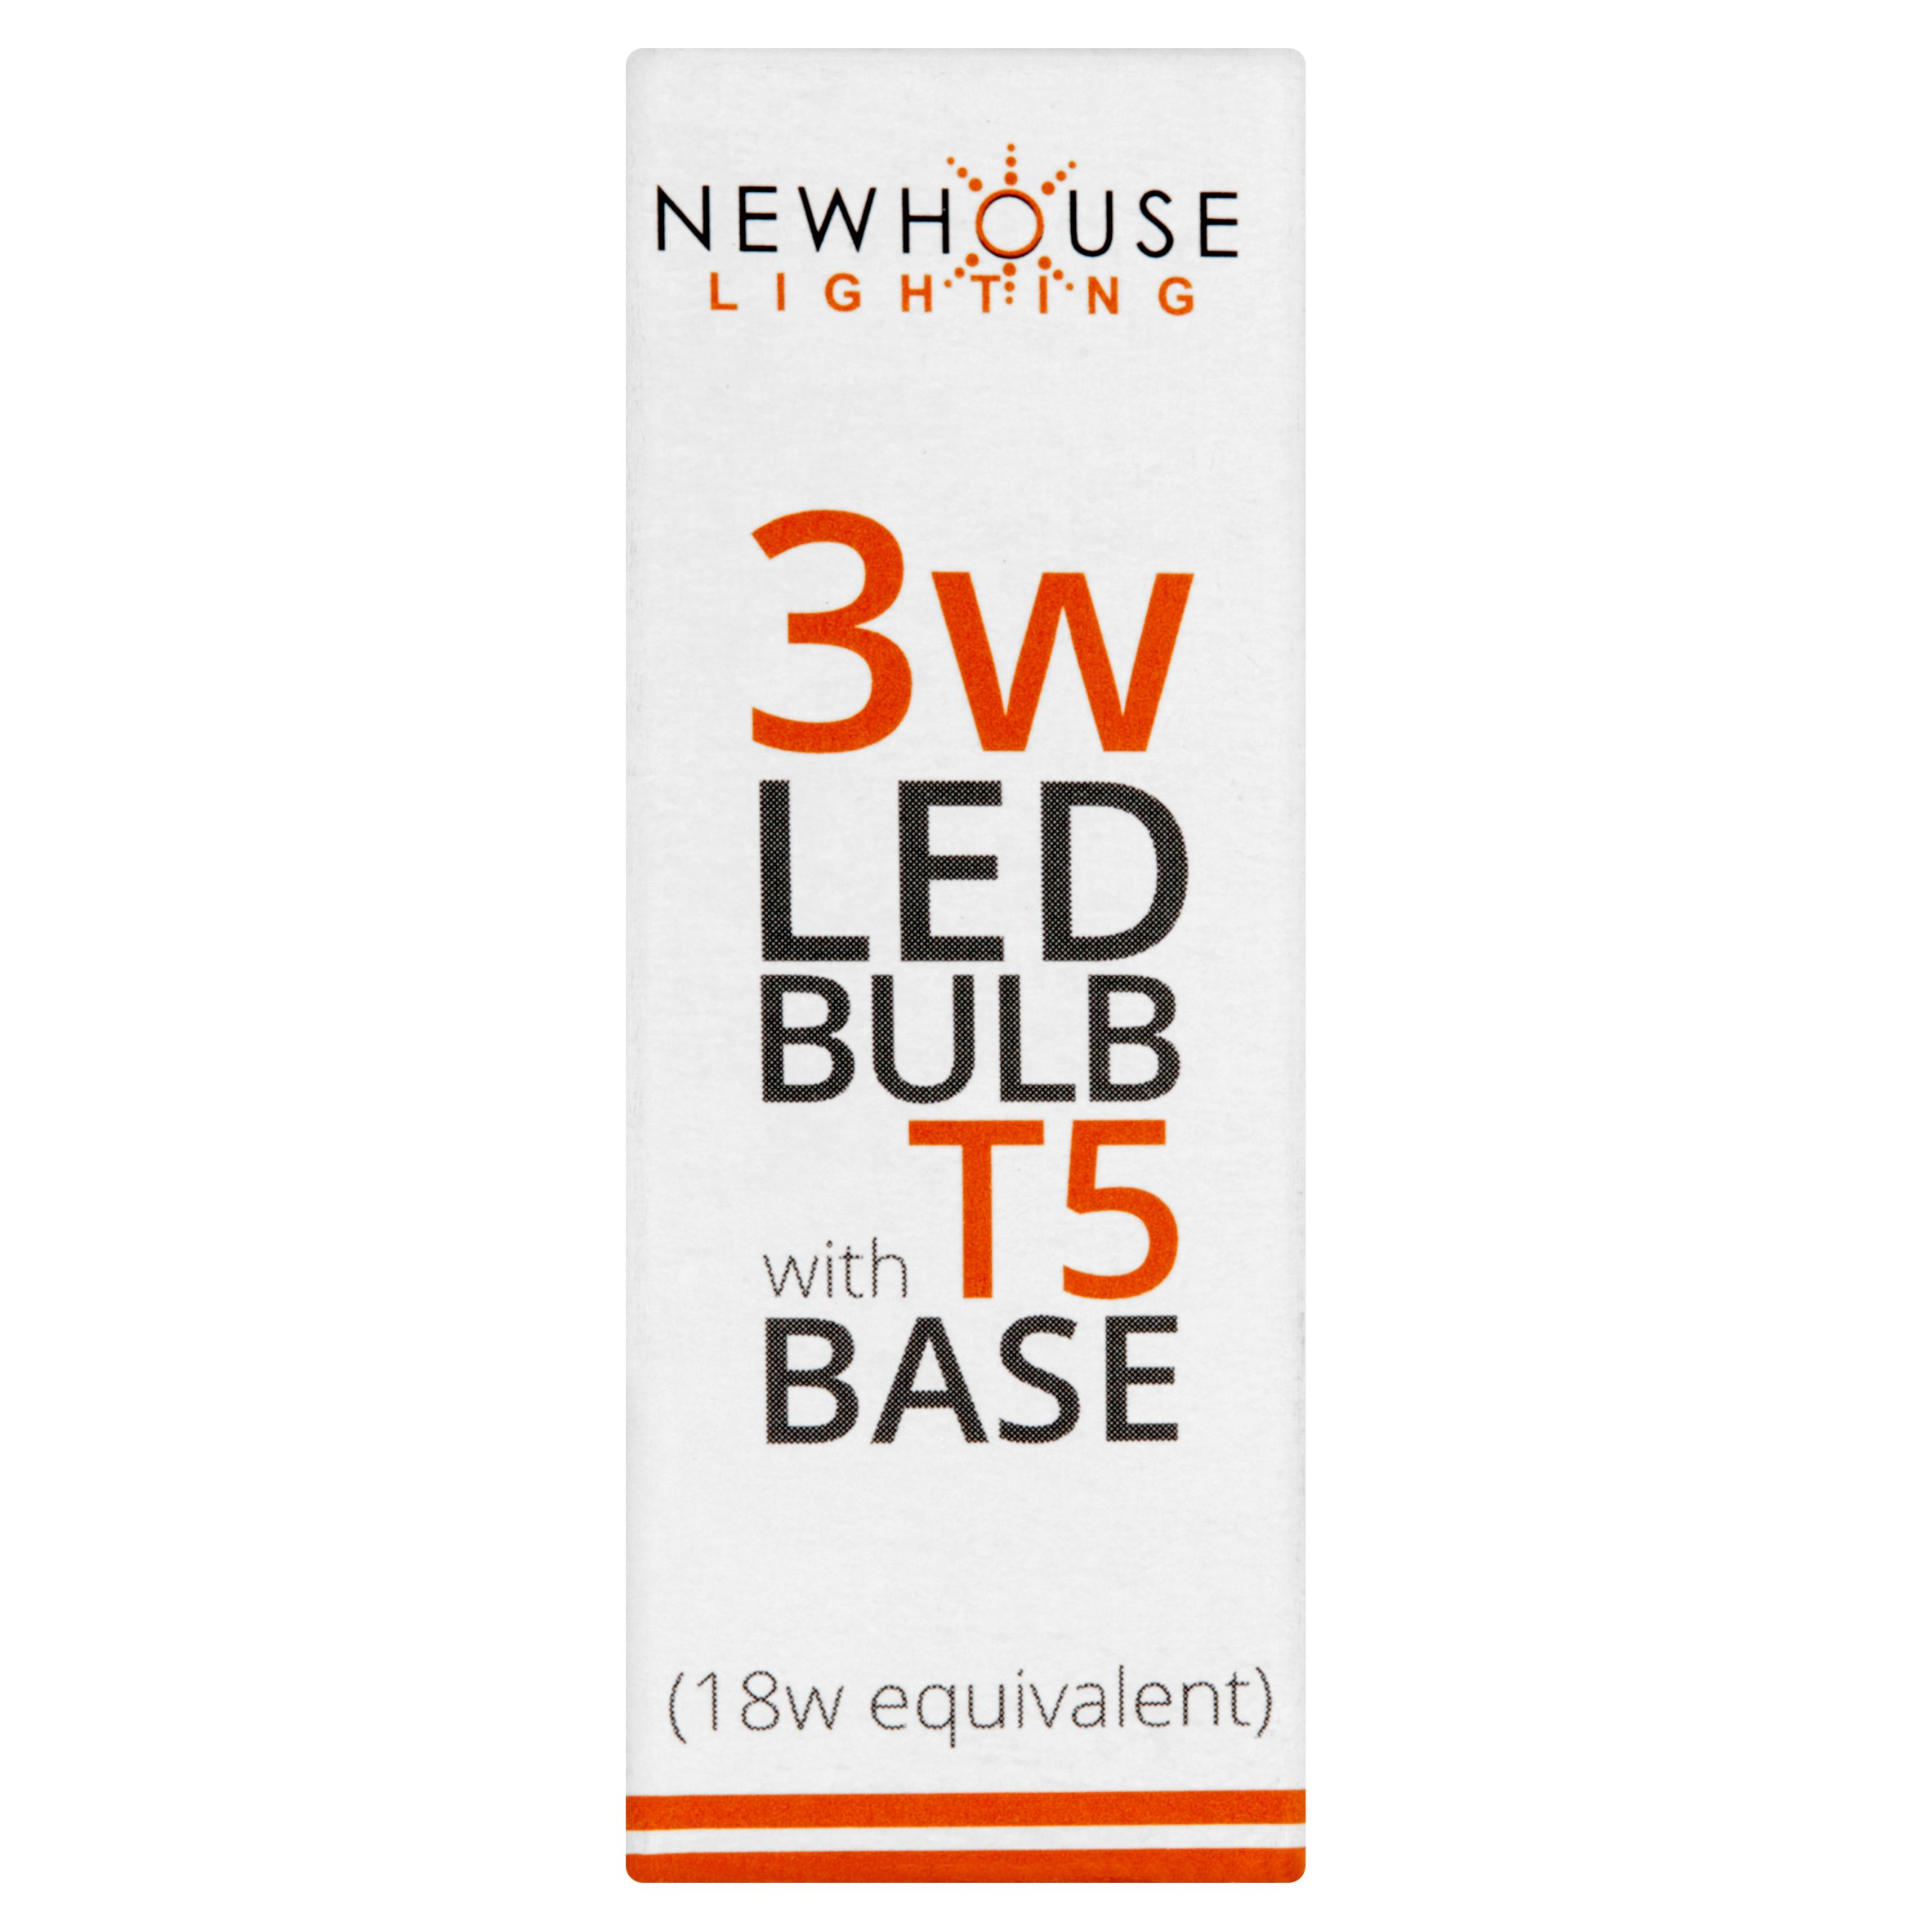 Newhouse Lighting 3w LED Bulb with T5 Base